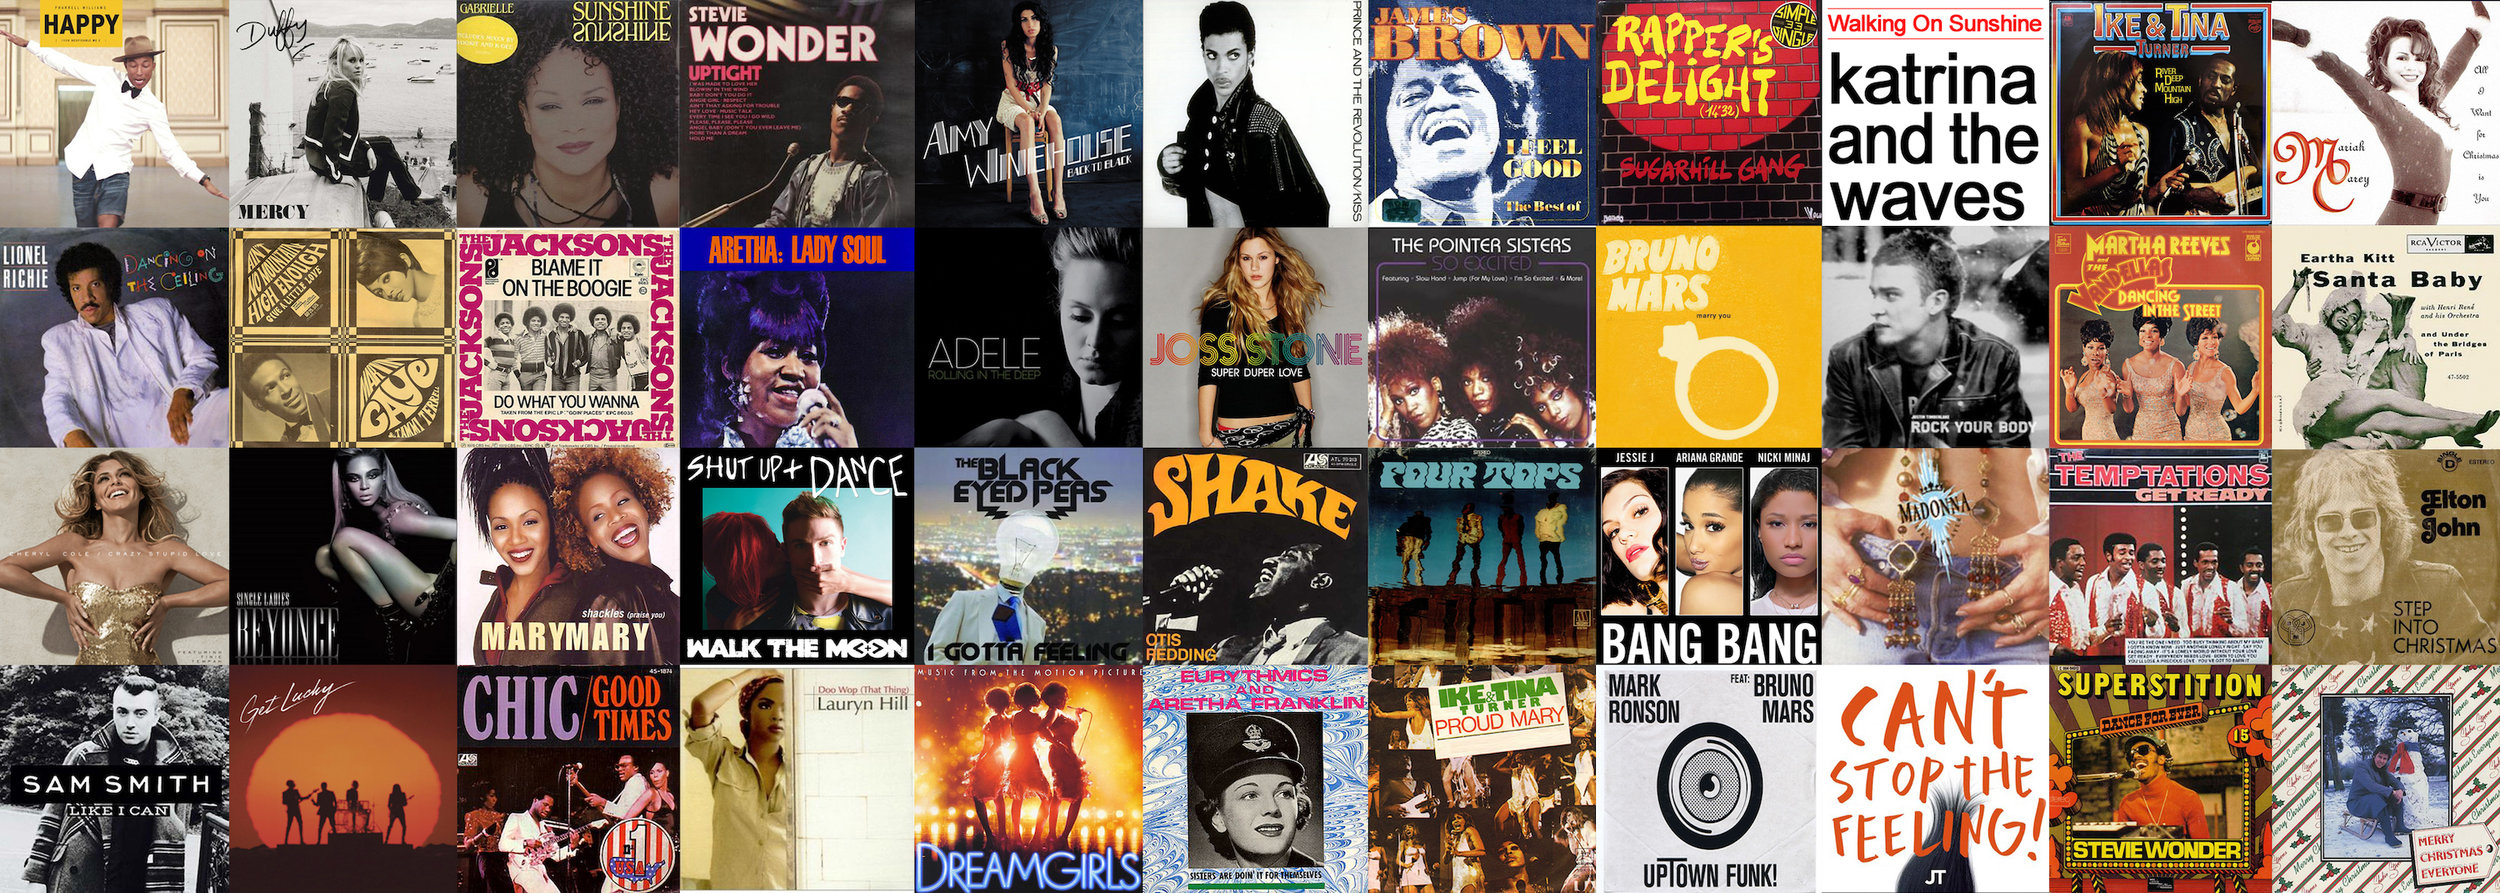 SOME FEATURED SONGS & ARTISTS - you can expect to hear when partying Queen Beats style.